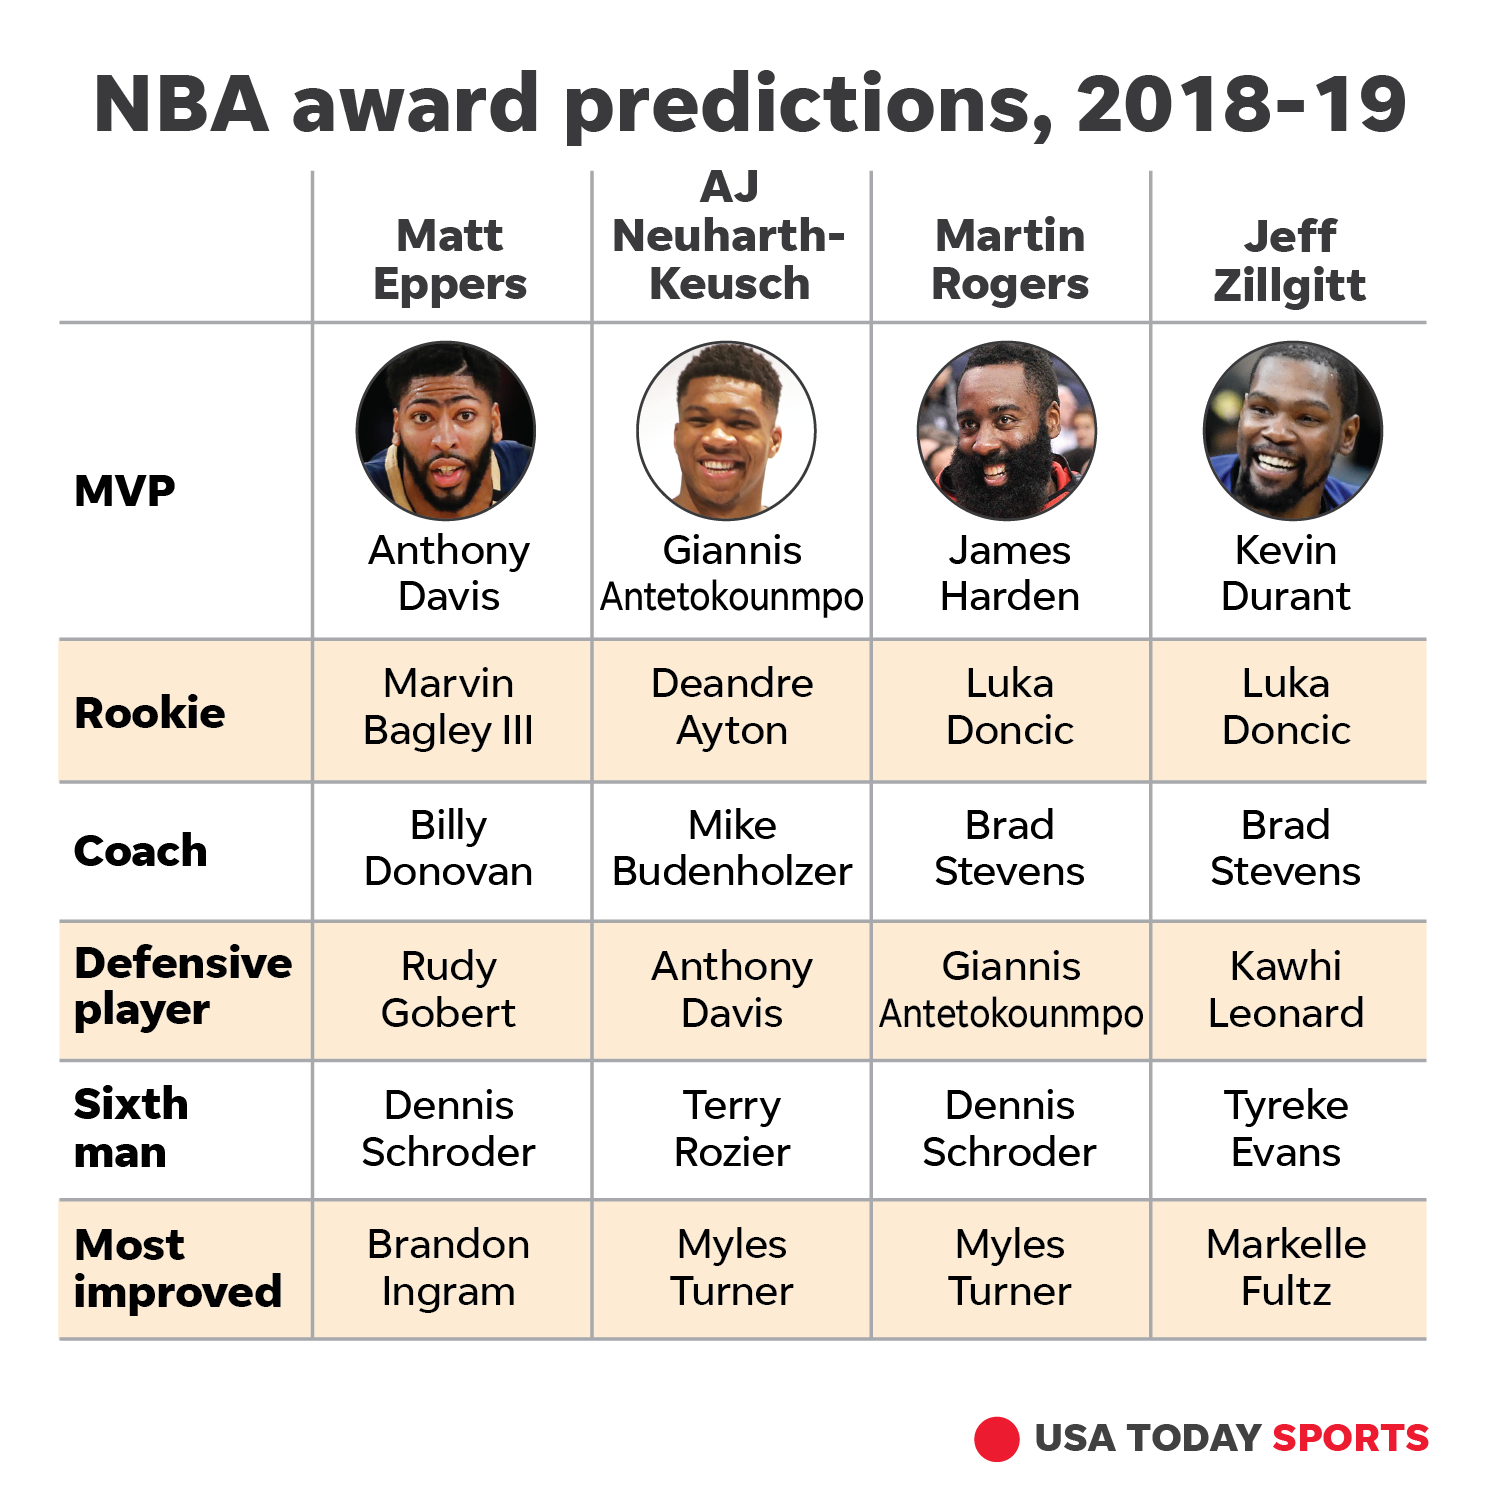 Nba Rookie Award Predictions For 2018 19 Season: NBA Watchability Rankings: Top 10 Must-see Teams For 2018